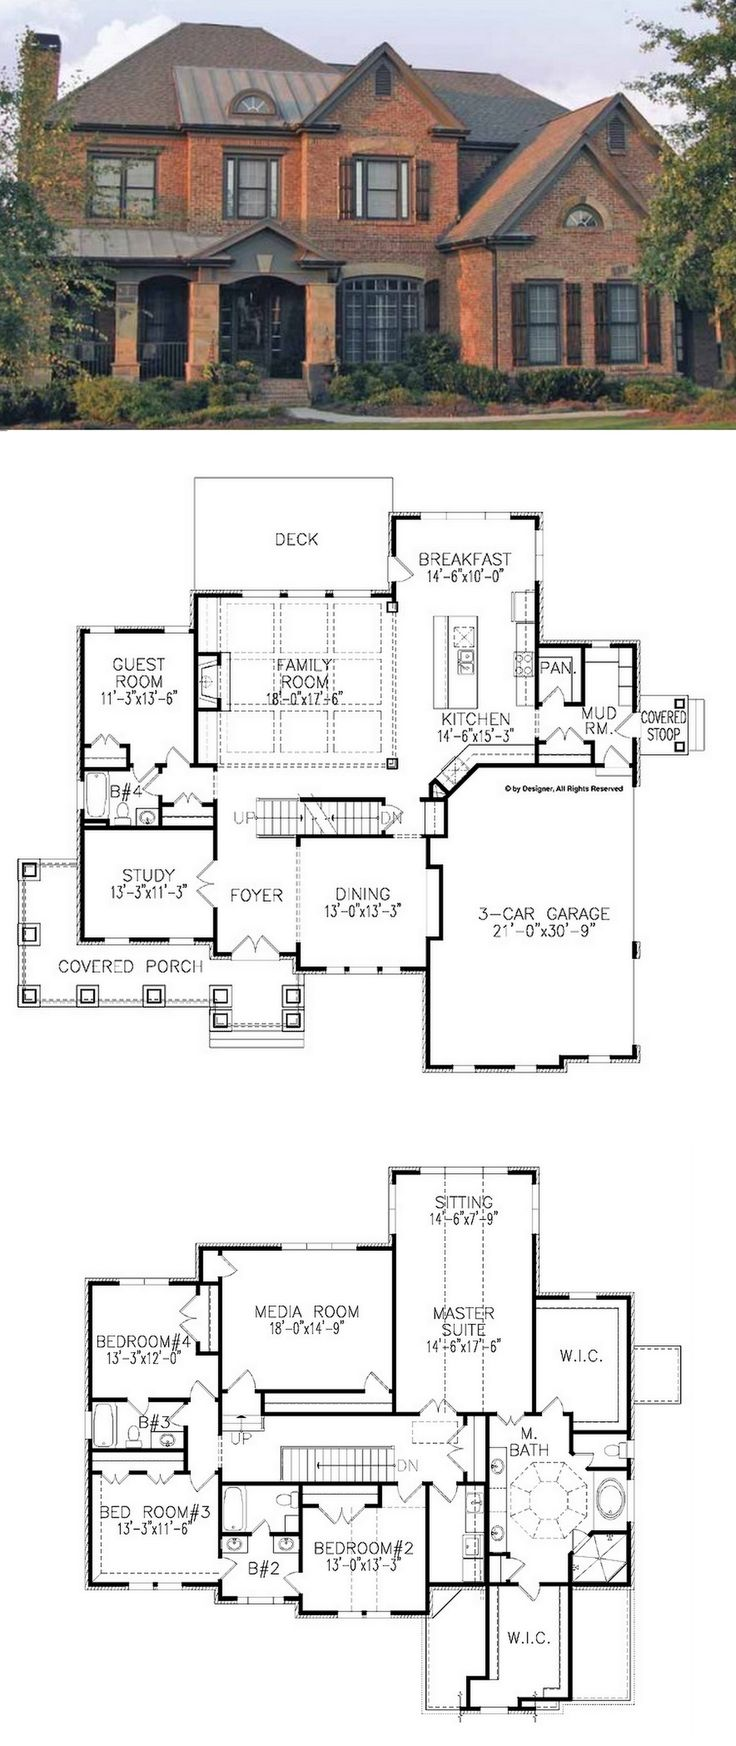 Best 25 5 bedroom house plans ideas only on pinterest 4 for 5 bedroom house designs uk